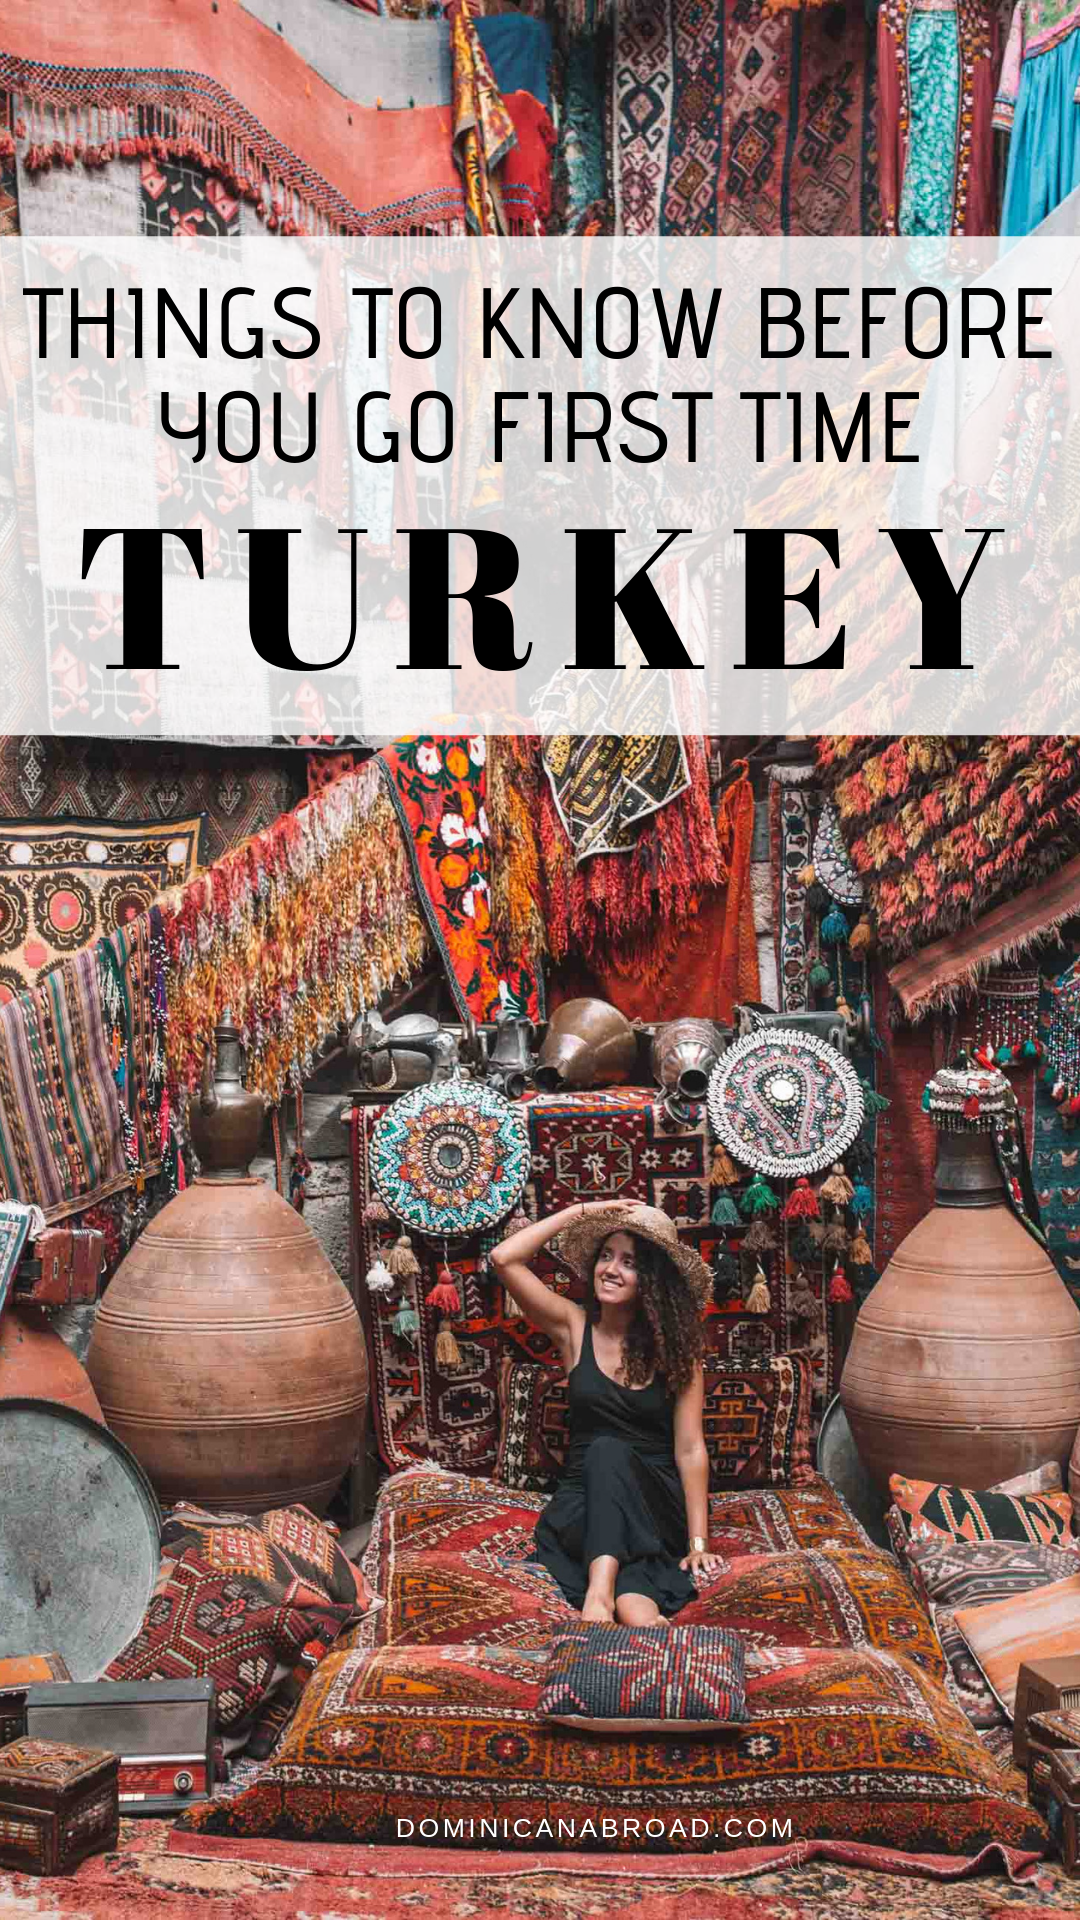 All About Turkey! Read These Top Travel Tips For the Best Trip to this Beautiful Destination -  Planning a trip to Turkey? Here are the utmost important things to know: language, currency, visa,  - #about #AdventureTravel #beautiful #CultureTravel #destination #NightlifeTravel #Read #these #tips #Top #travel #TravelPhotography #trip #turkey